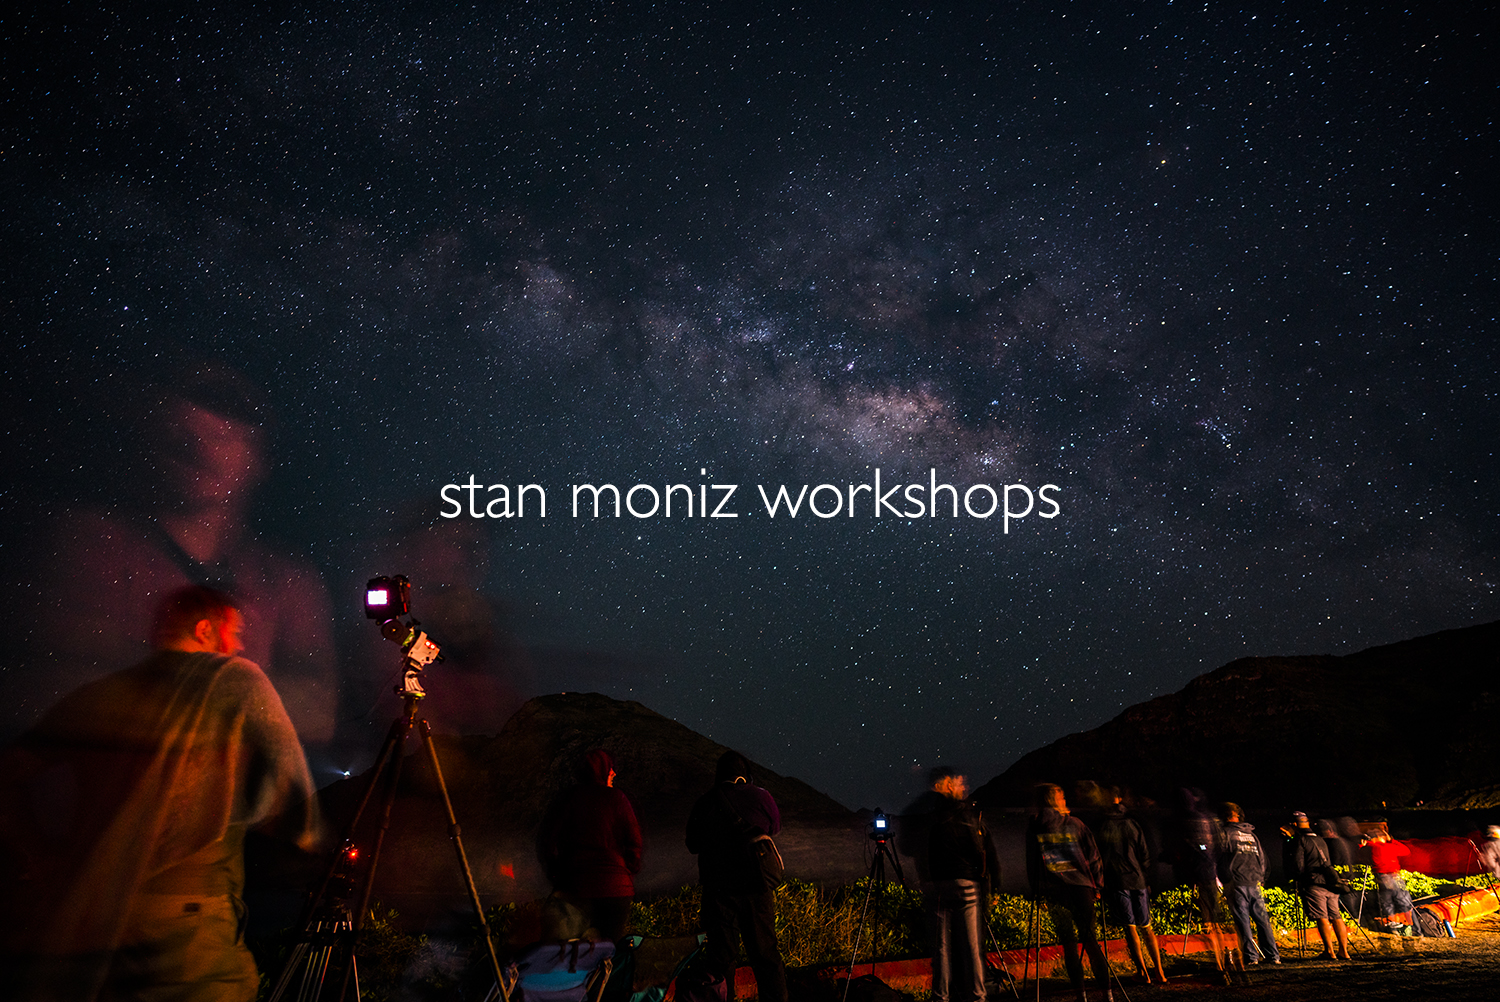 STAN-MONIZ-WORKSHOPS-STAN-MONIZ-PRODUCTIONS.jpg